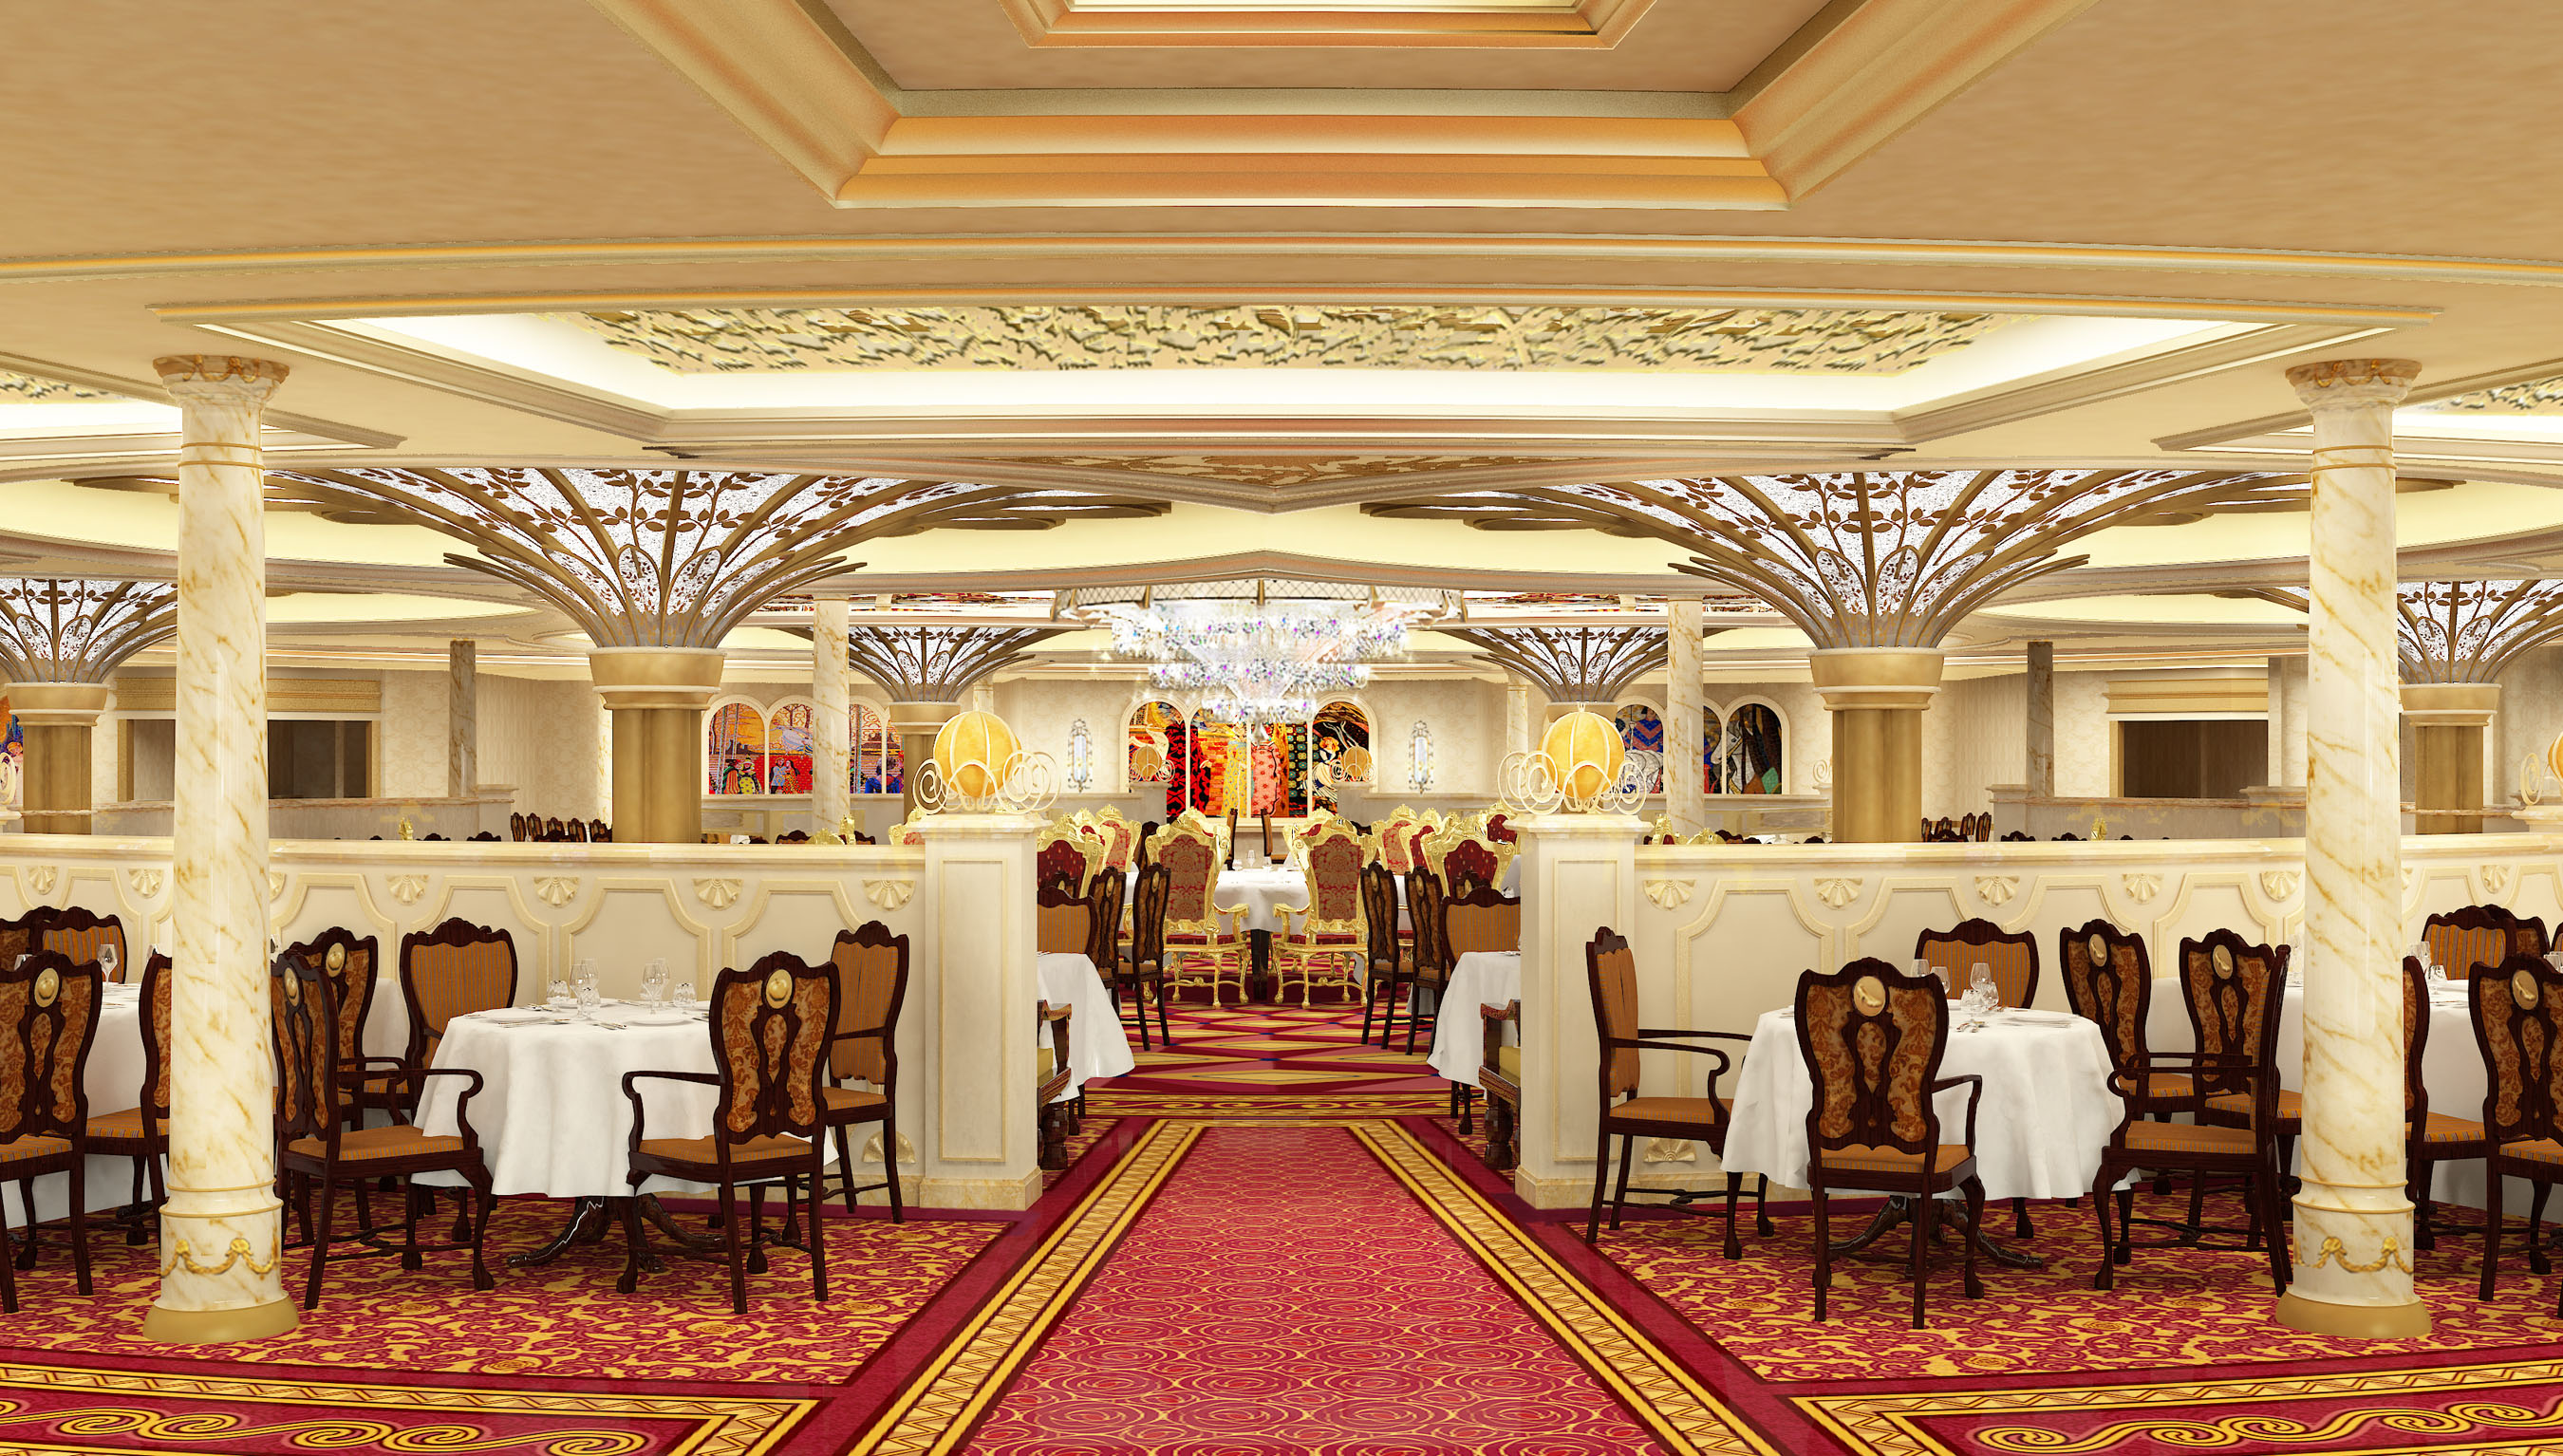 DCL's Disney Fantasy to Feature Mademoiselle Minnie and Royal Court Restaurant